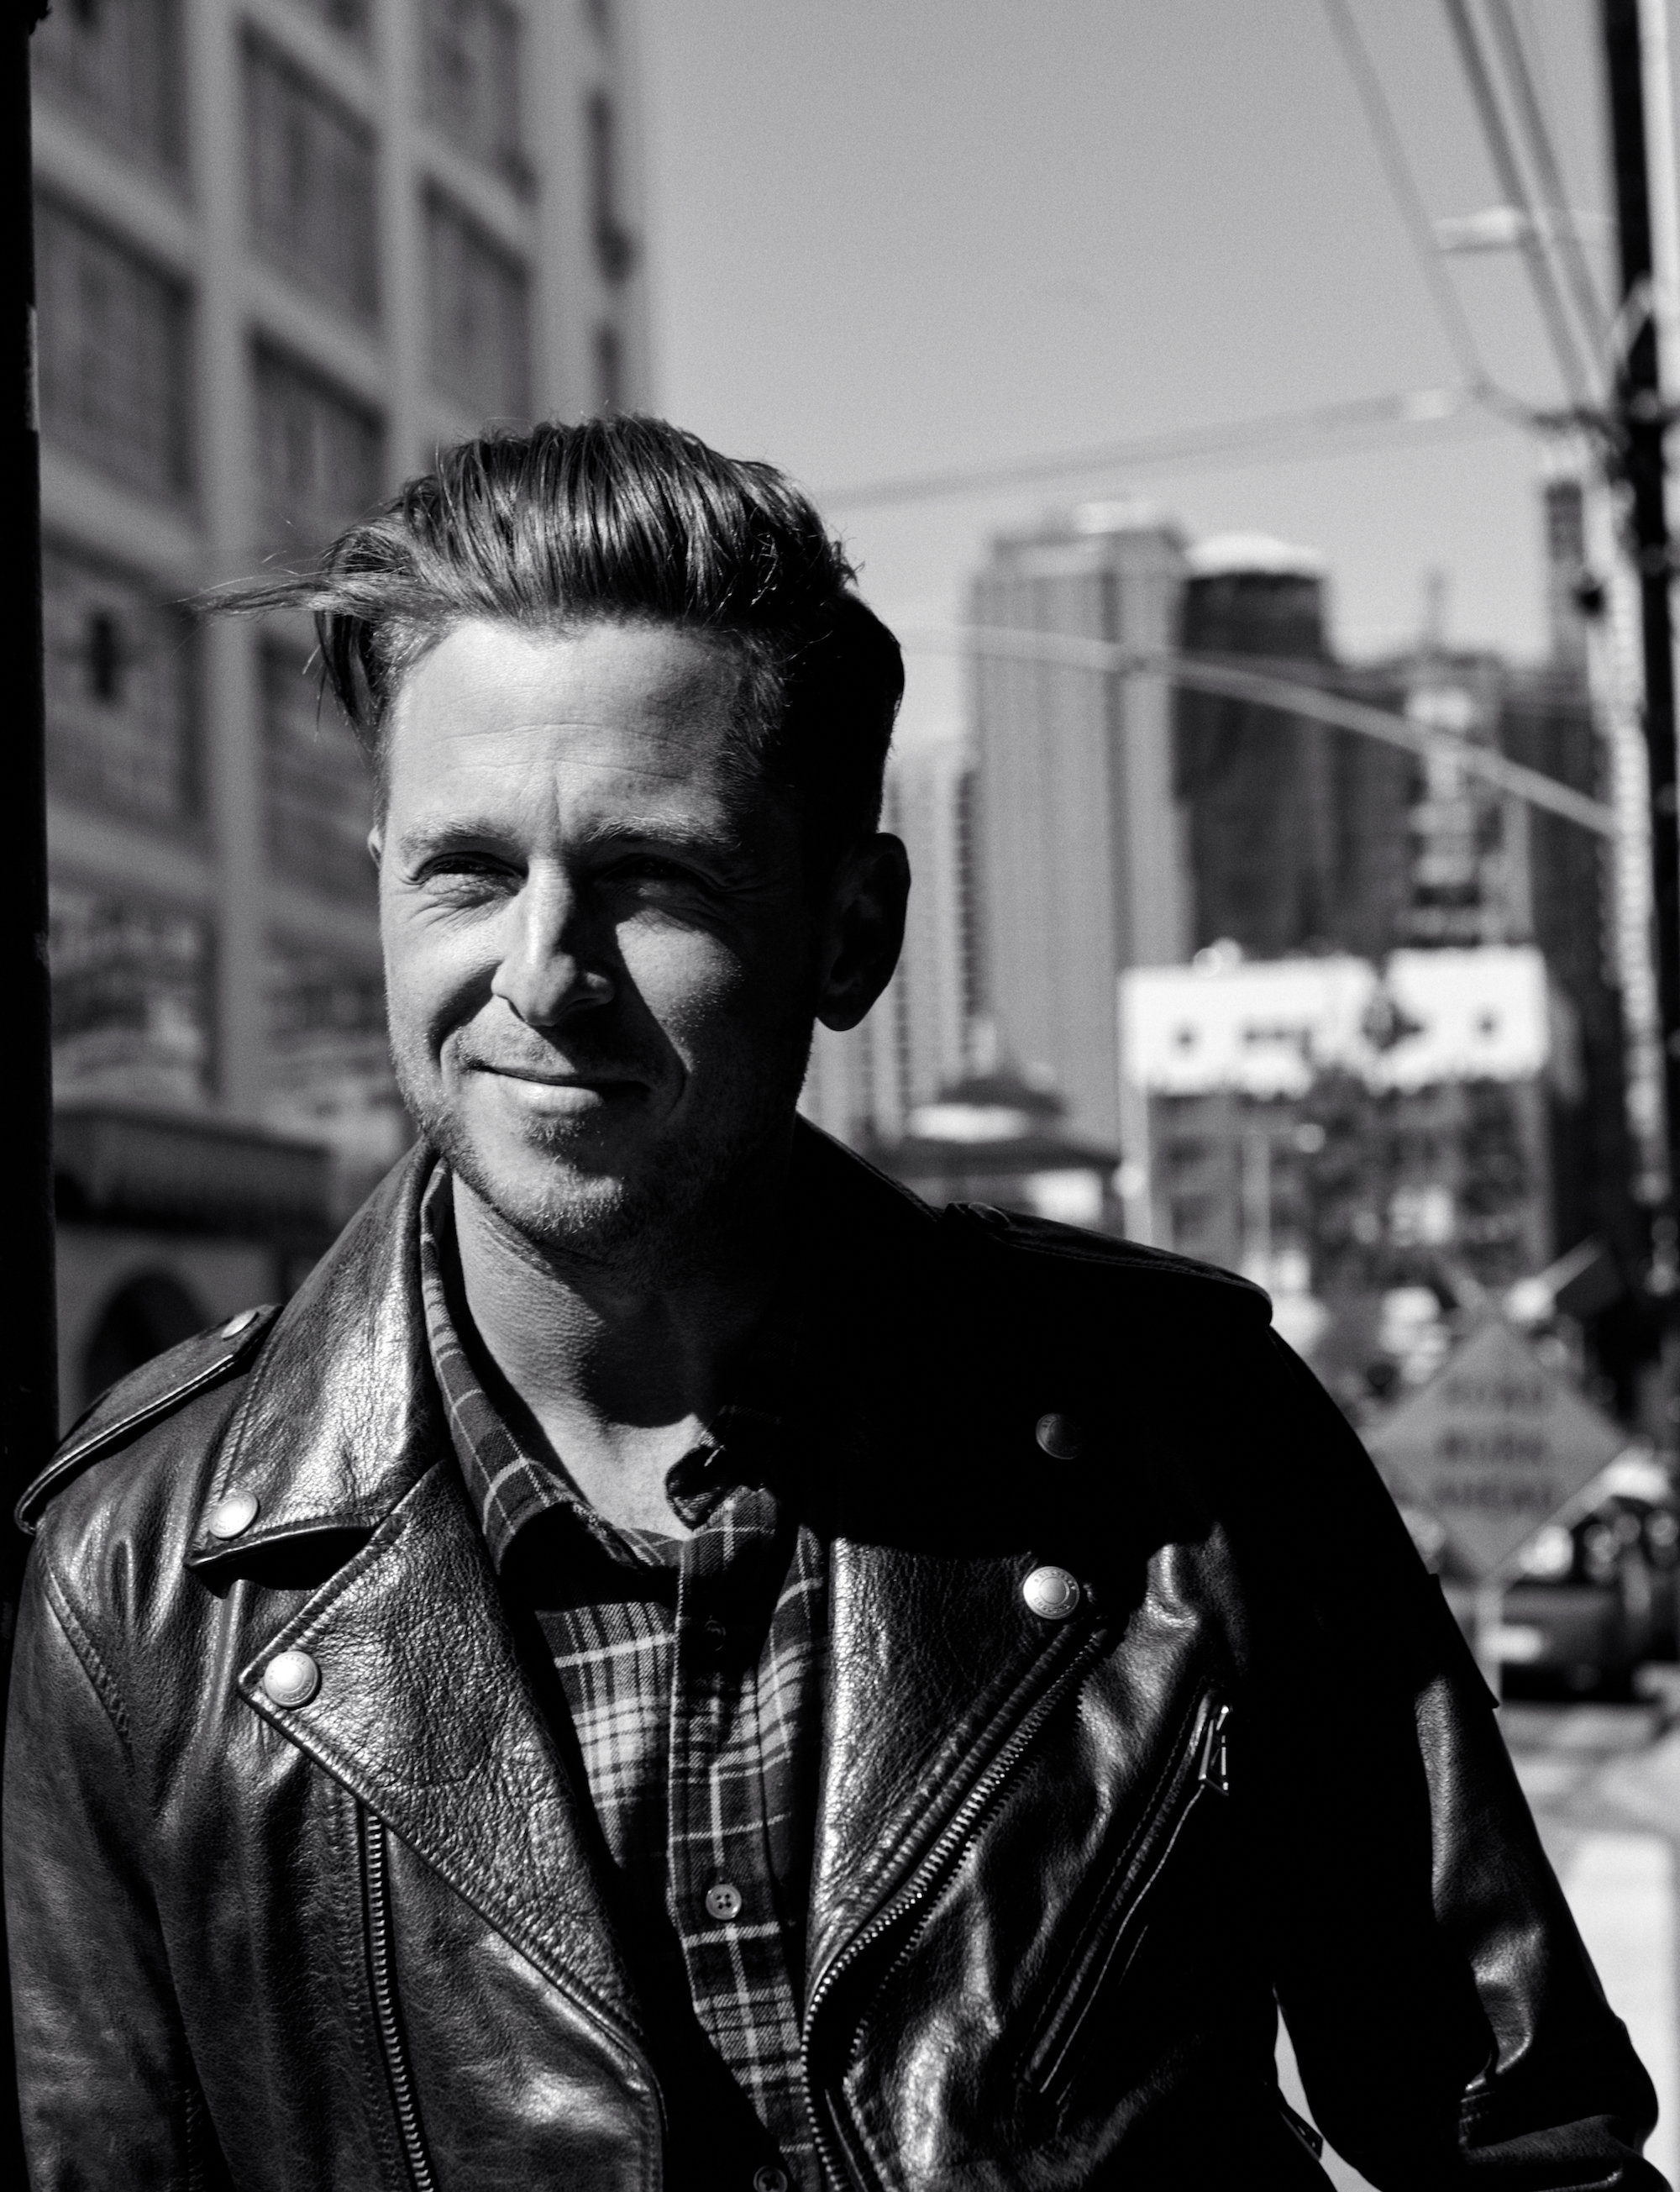 Ryan Tedder, frontman of OneRepublic, interview with Wonderland outdoors